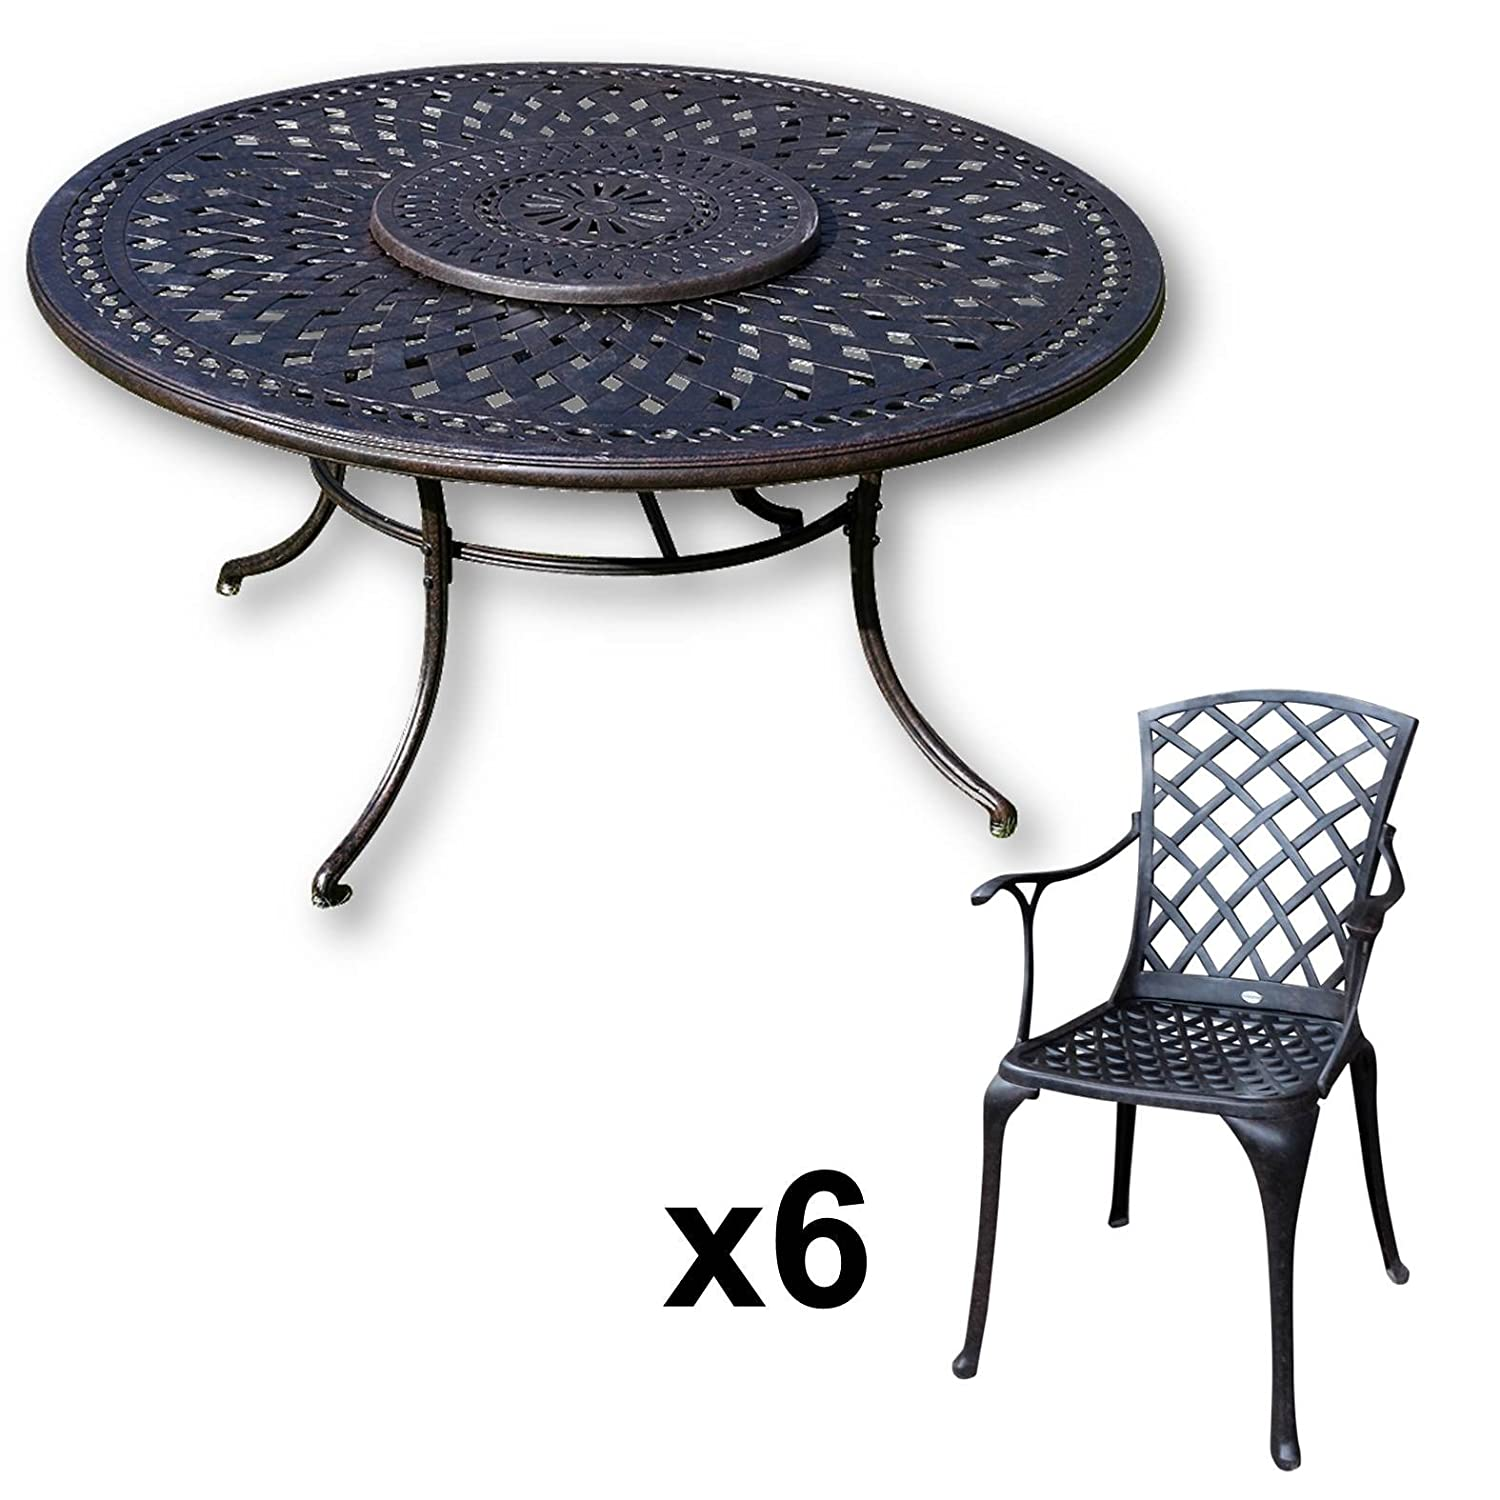 lazy susan frances 150 cm runder gartentisch mit 6 st hlen gartenm bel set aus metall antik. Black Bedroom Furniture Sets. Home Design Ideas